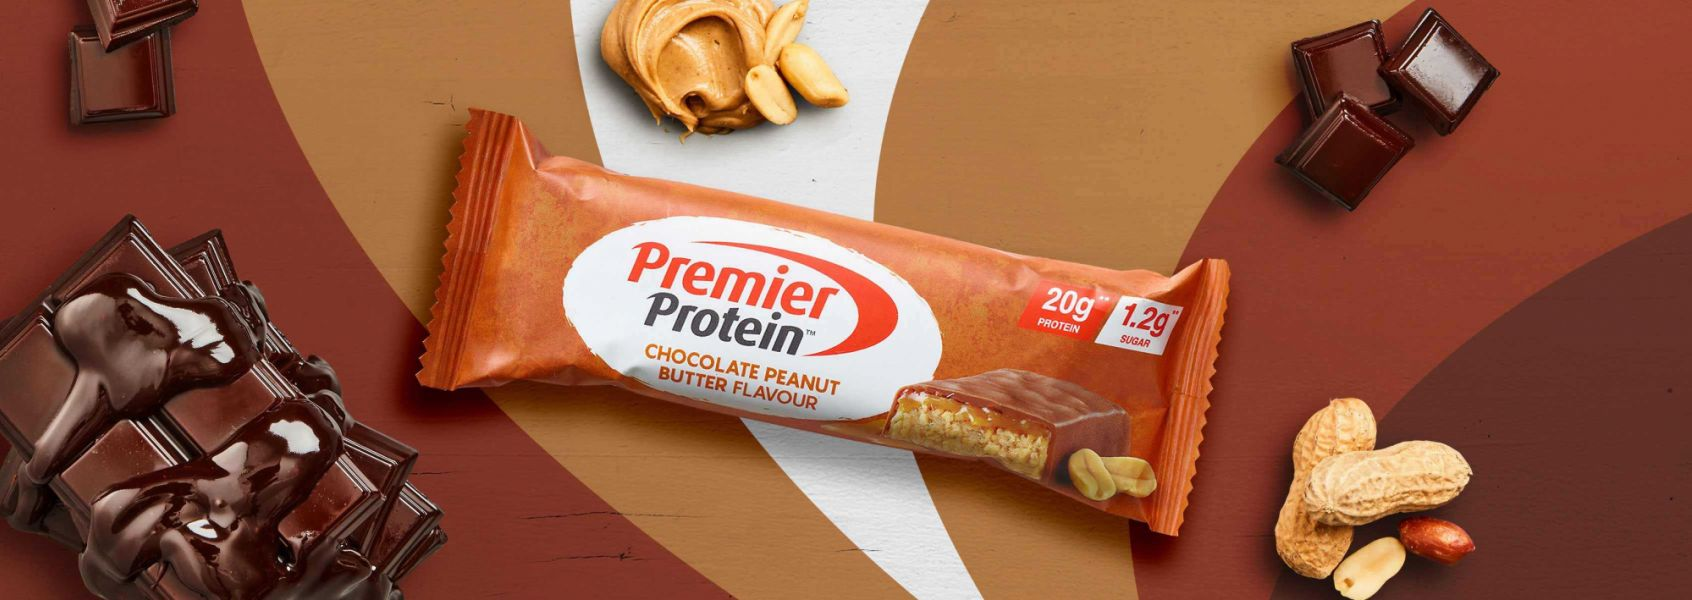 A photo of Premier Protein Chocolate Peanut Butter Protein Bar